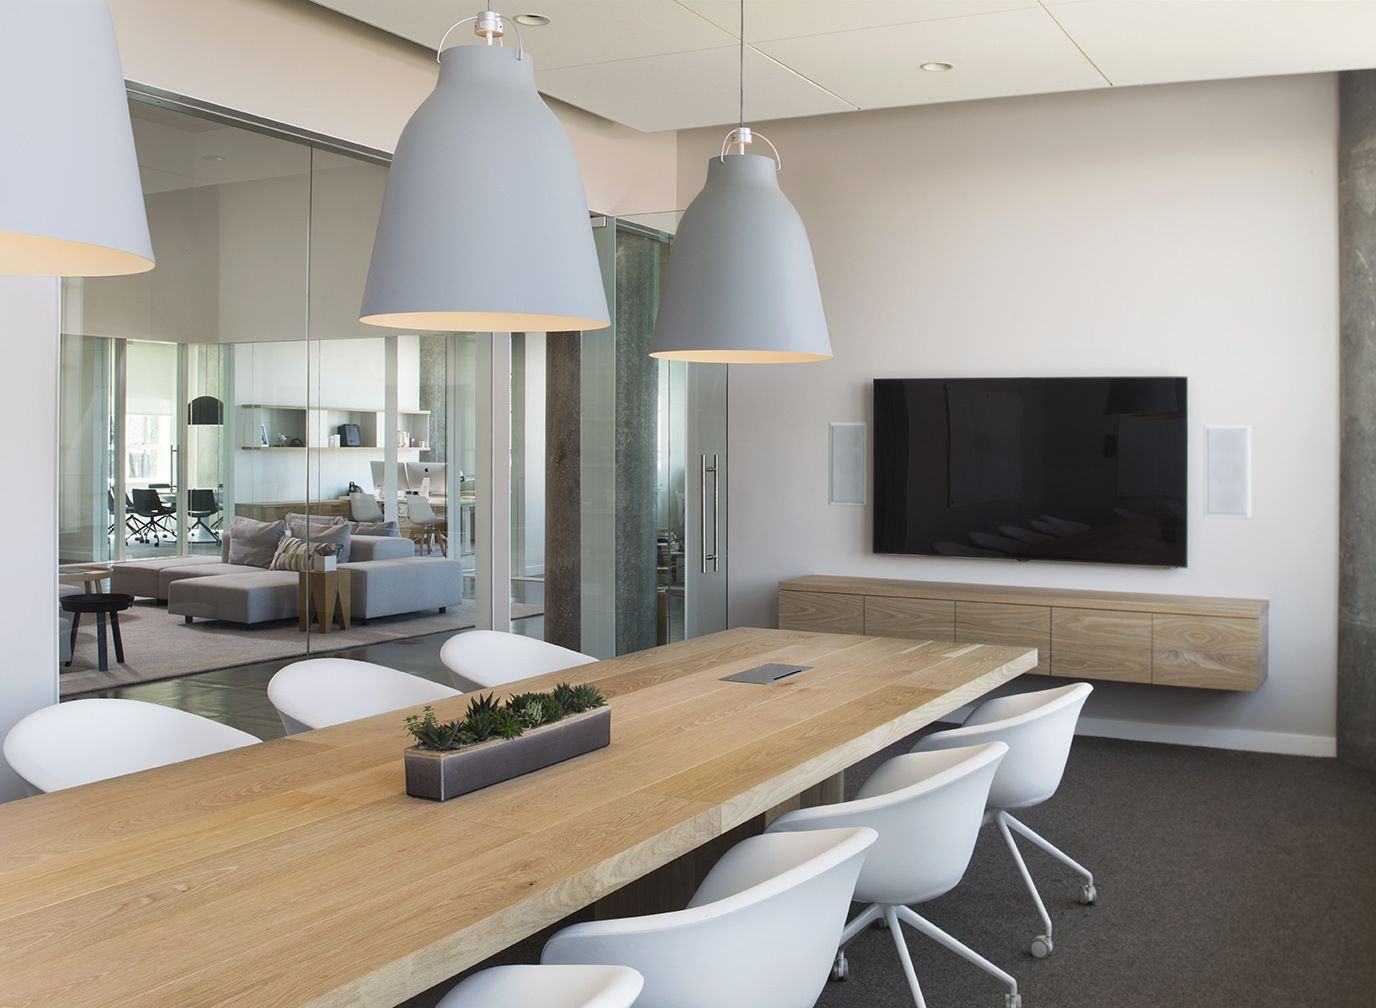 Venture capital firm san francisco offices office for Commercial design firms